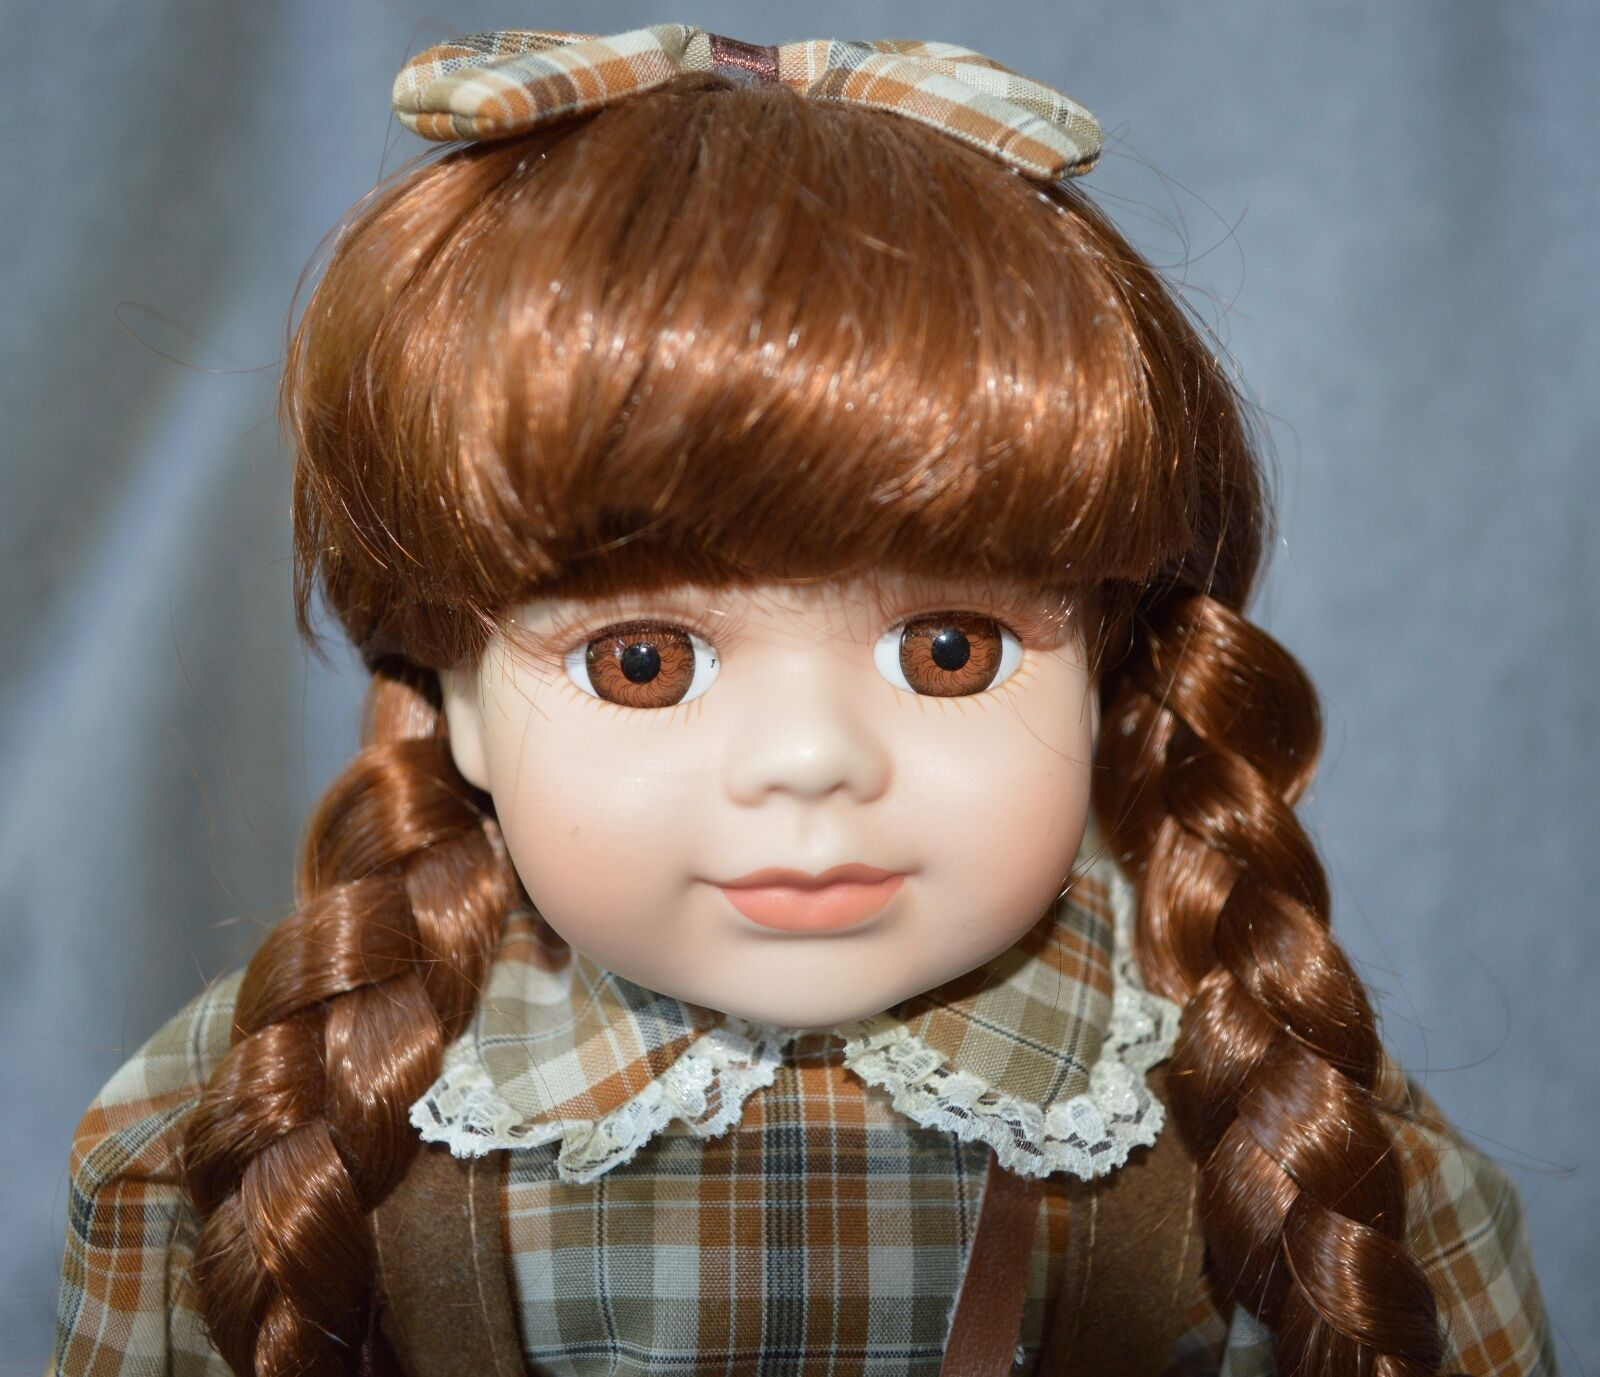 German Porcelain Doll 16-inch from rossohenburg on the Tauber, Germany